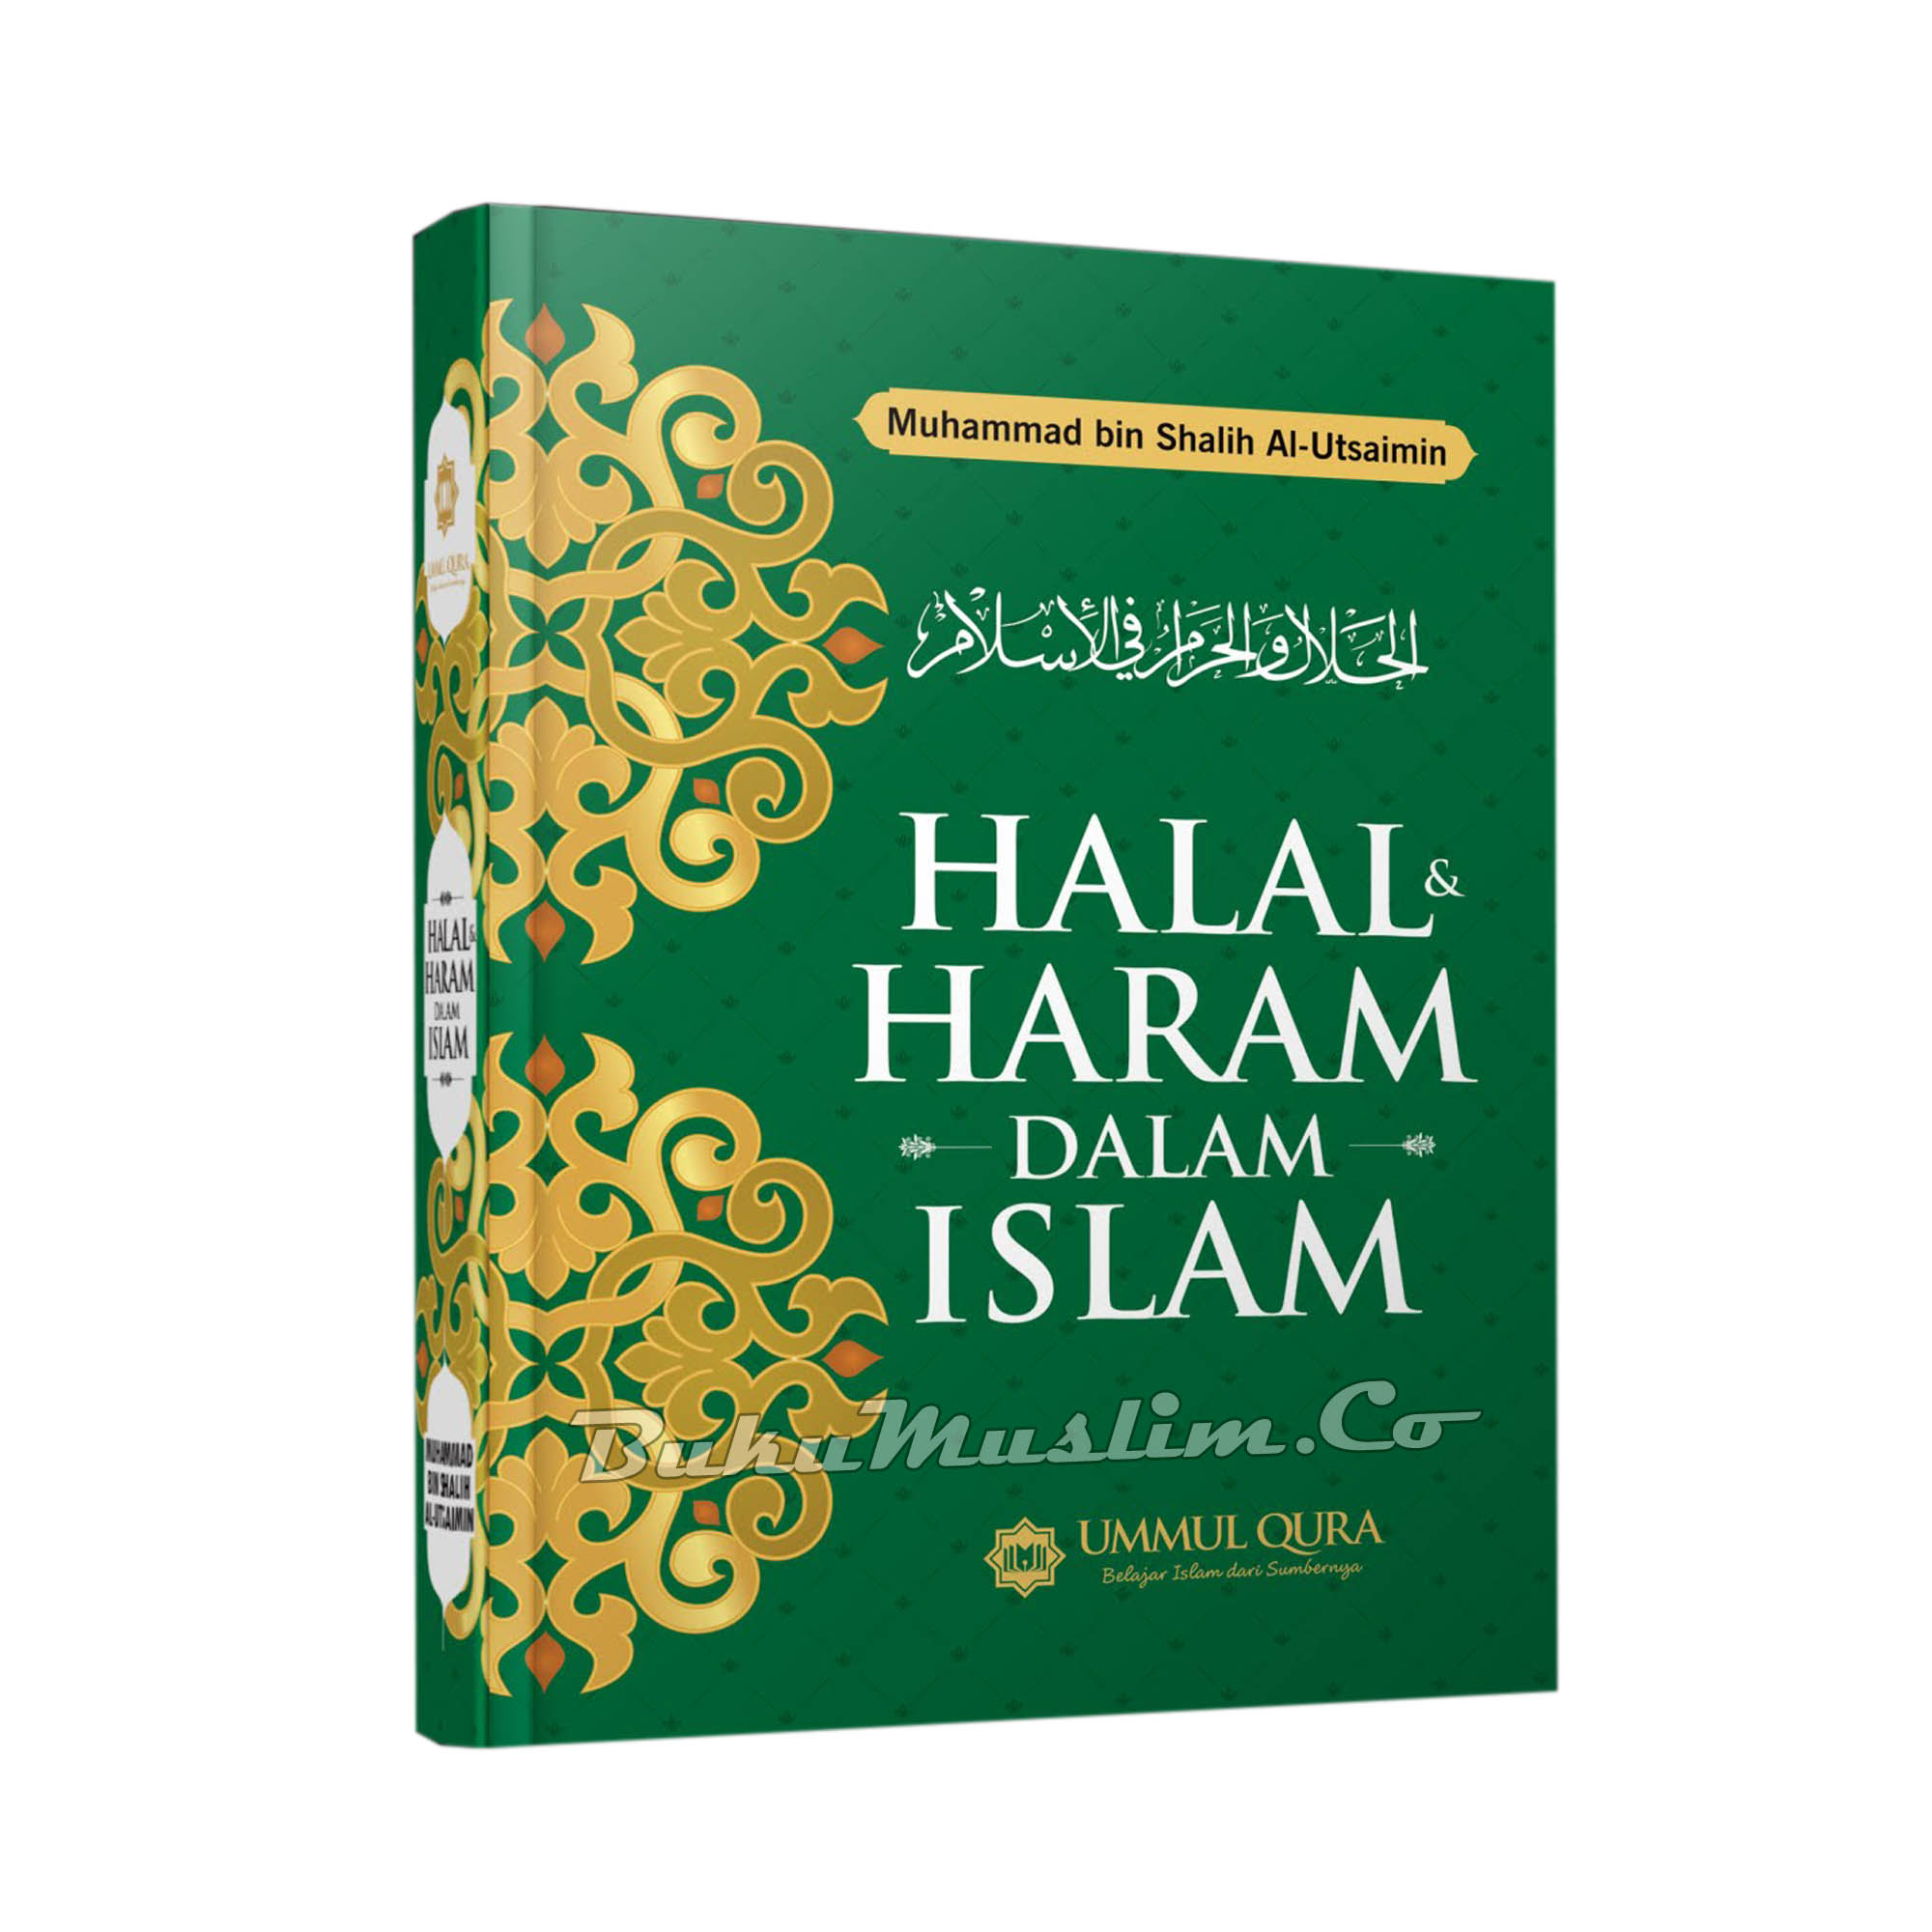 halal haram List of permitted (halal) & prohibited (haram) animals in islam they are camel, stag, balm fish, goat etc are halal & falcon, nightingale, cat are haram.